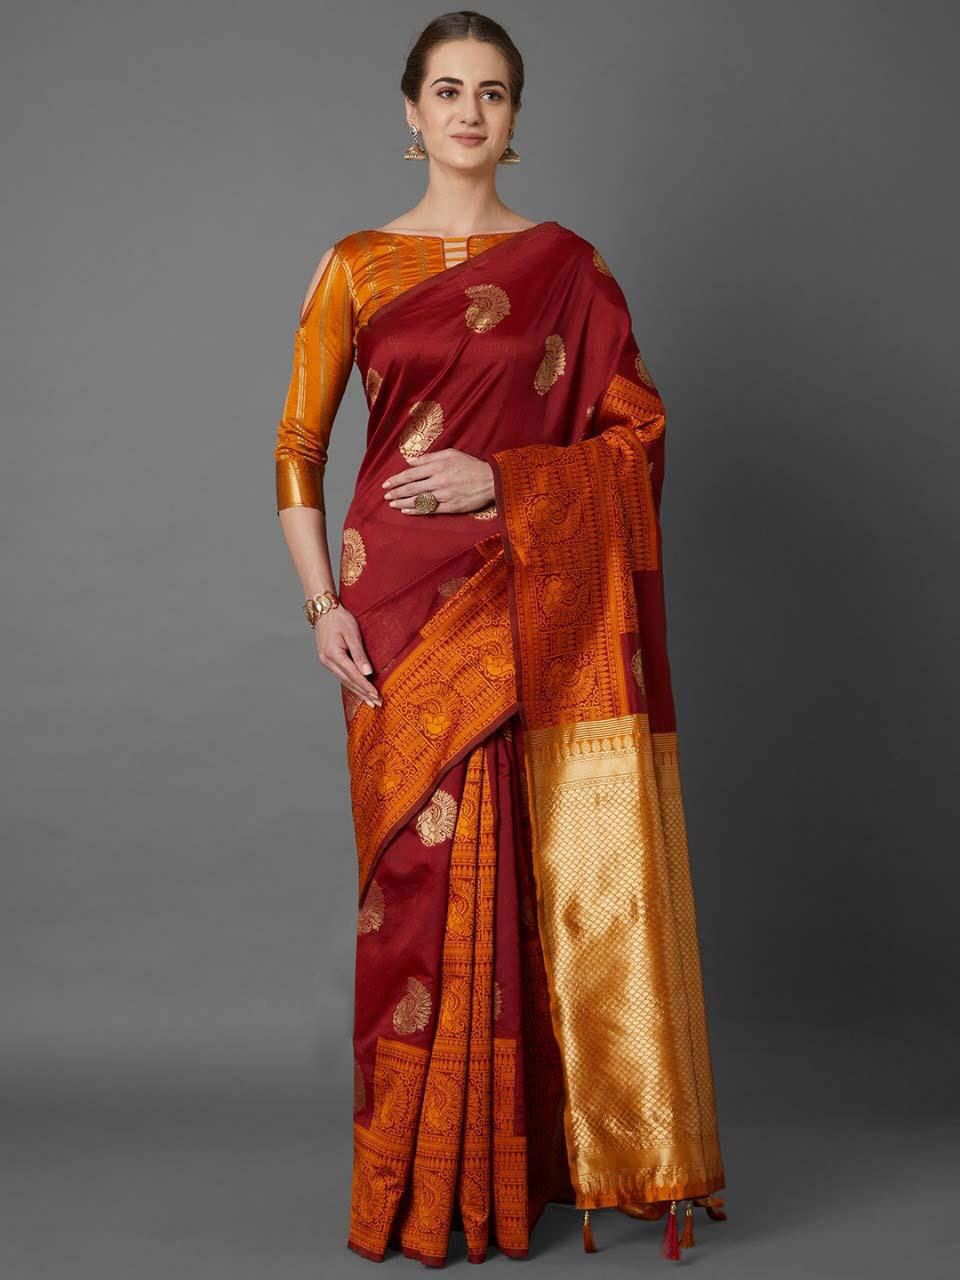 Soft Silk With Solid Zari Work Self Design Jacquard Work Saree (maroon)dvz0001329